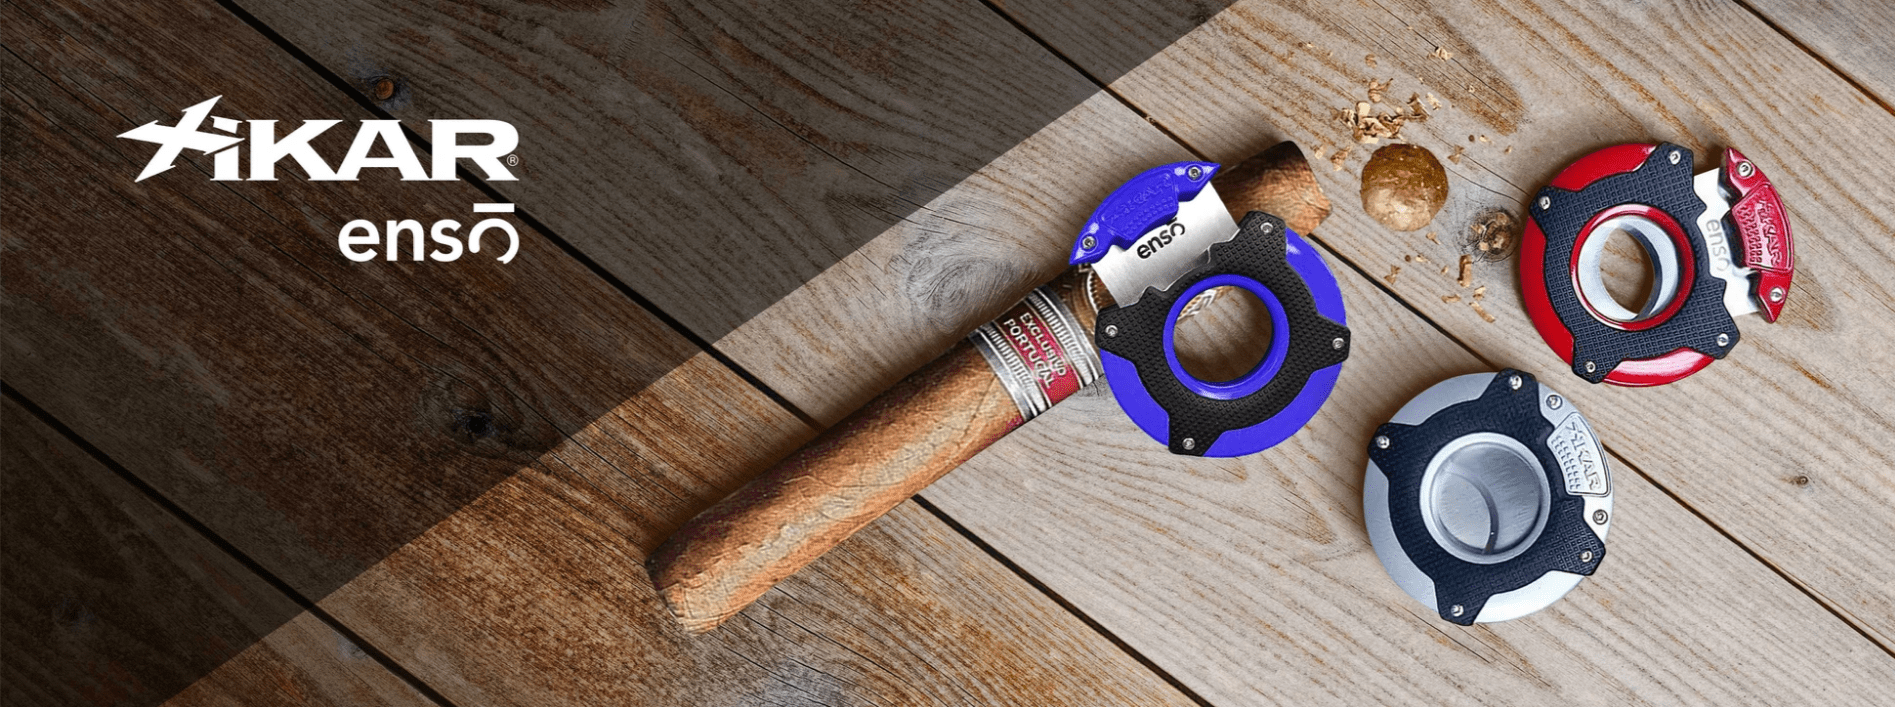 Lighter USA Coupon Code Cigar Cutter